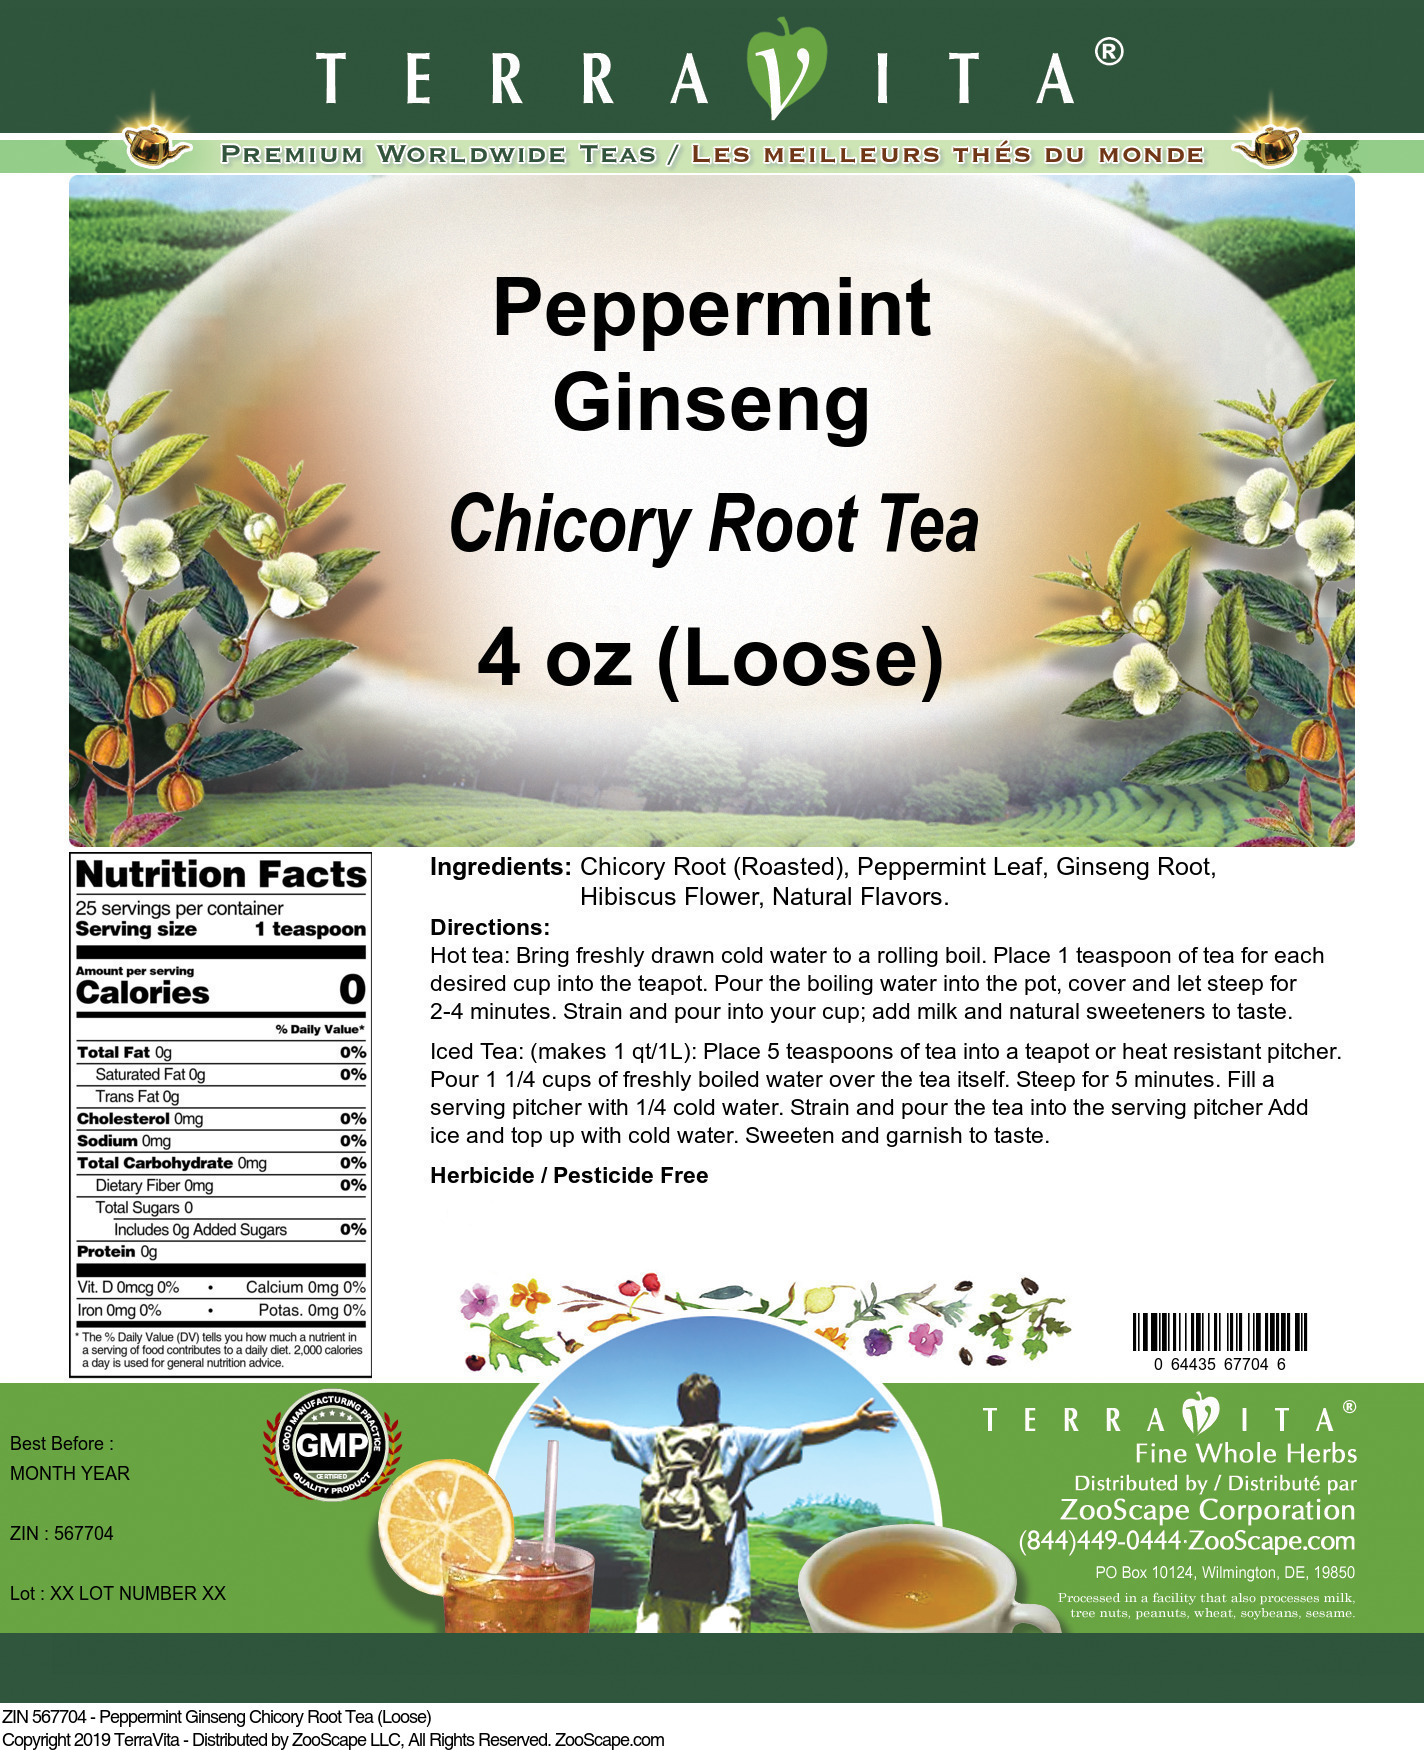 Peppermint Ginseng Chicory Root Tea (Loose)